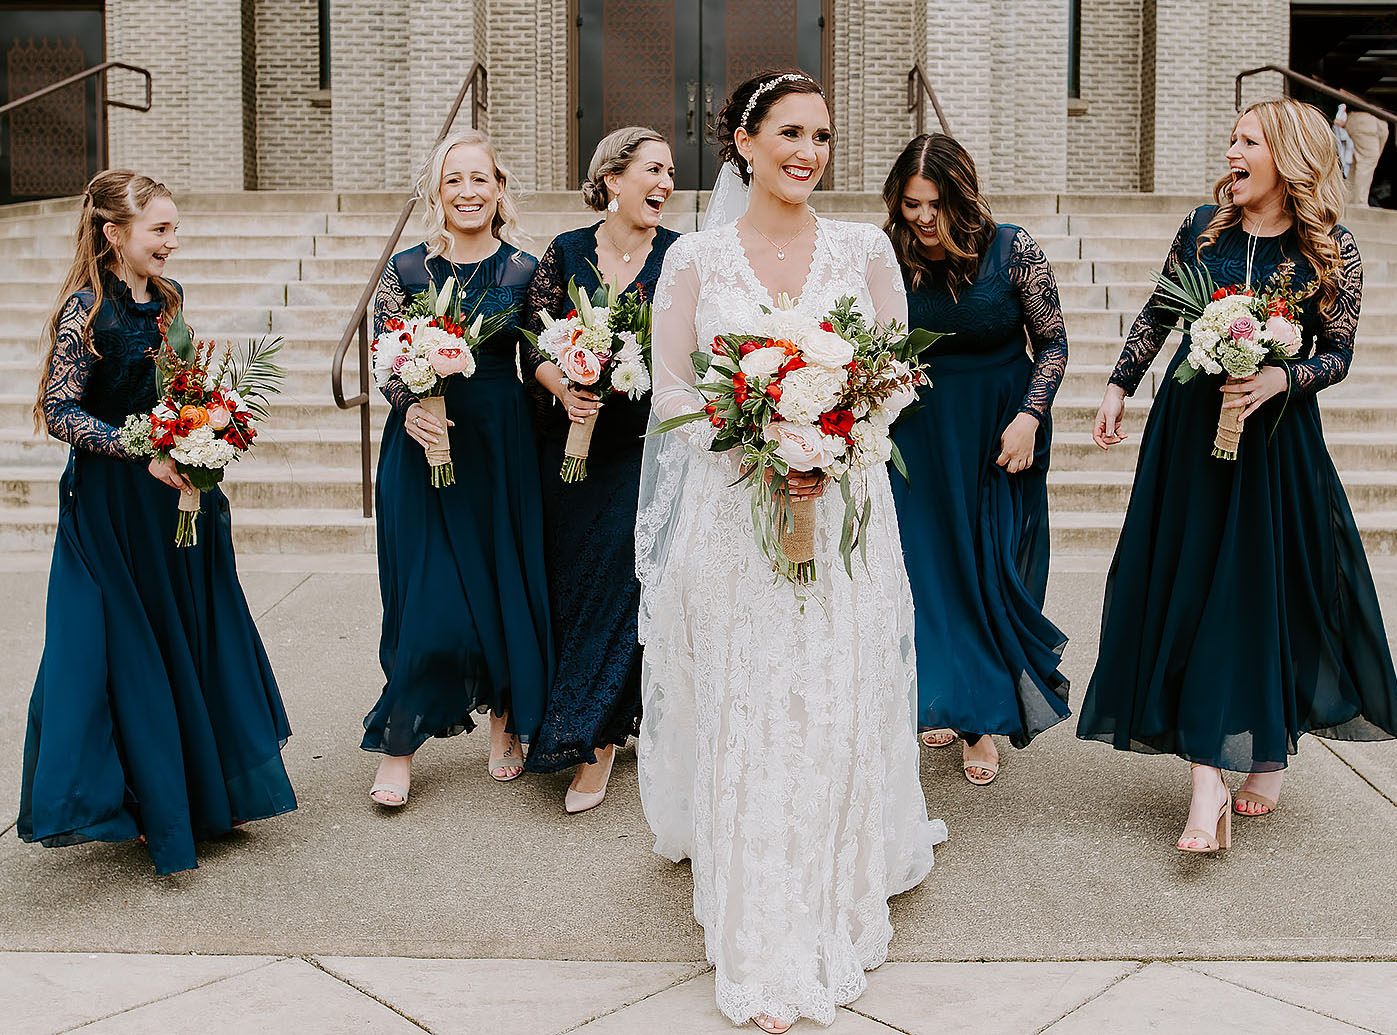 2. Bridesmaids should be dressed at least thirty minutes prior to the Bride.  All bridesmaids and mothers should be ready by the time the Bride puts on her dress. Added note: Consider asking mom and your maid of honor to assist with putting on your wedding dress. Then, reveal your final look to bridesmaids once you are in your Bridal Gown. This can alleviate too many cooks in the kitchen and make for a special moment between mom and daughter.